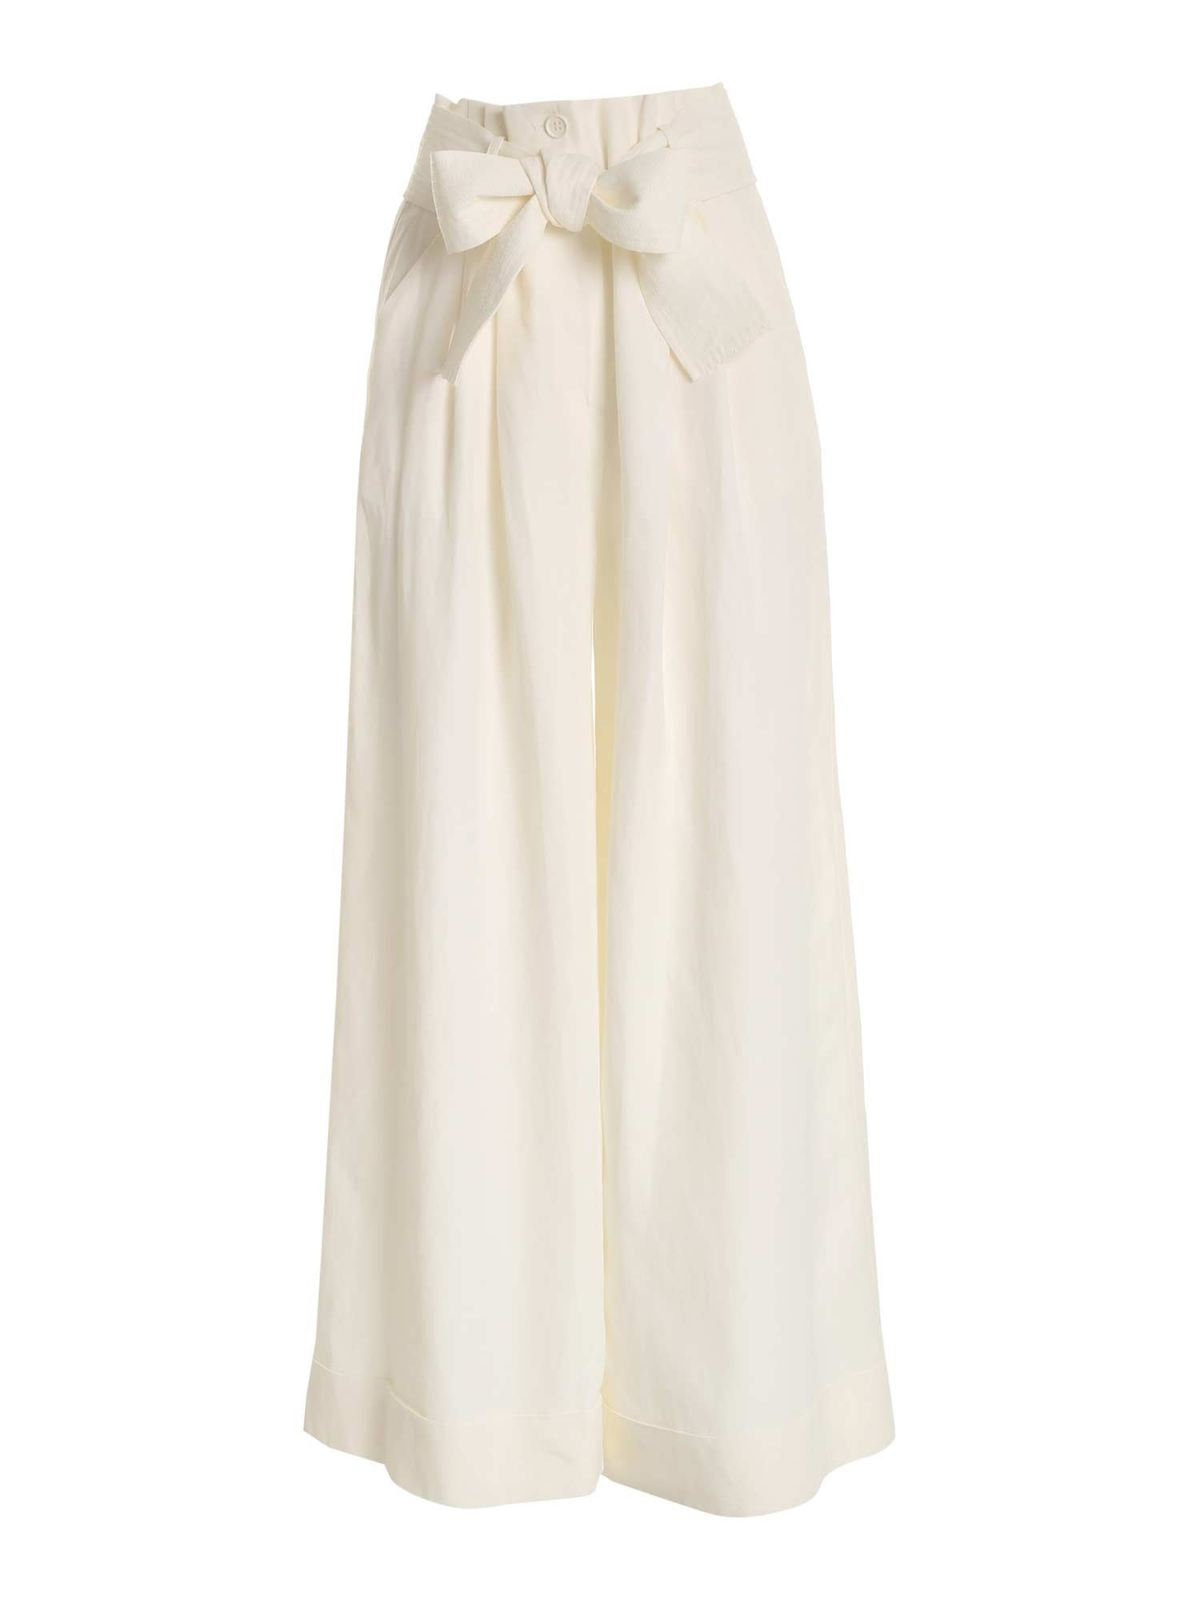 P.a.r.o.s.h. TURNED-UP PALAZZO PANTS IN IVORY COLOR